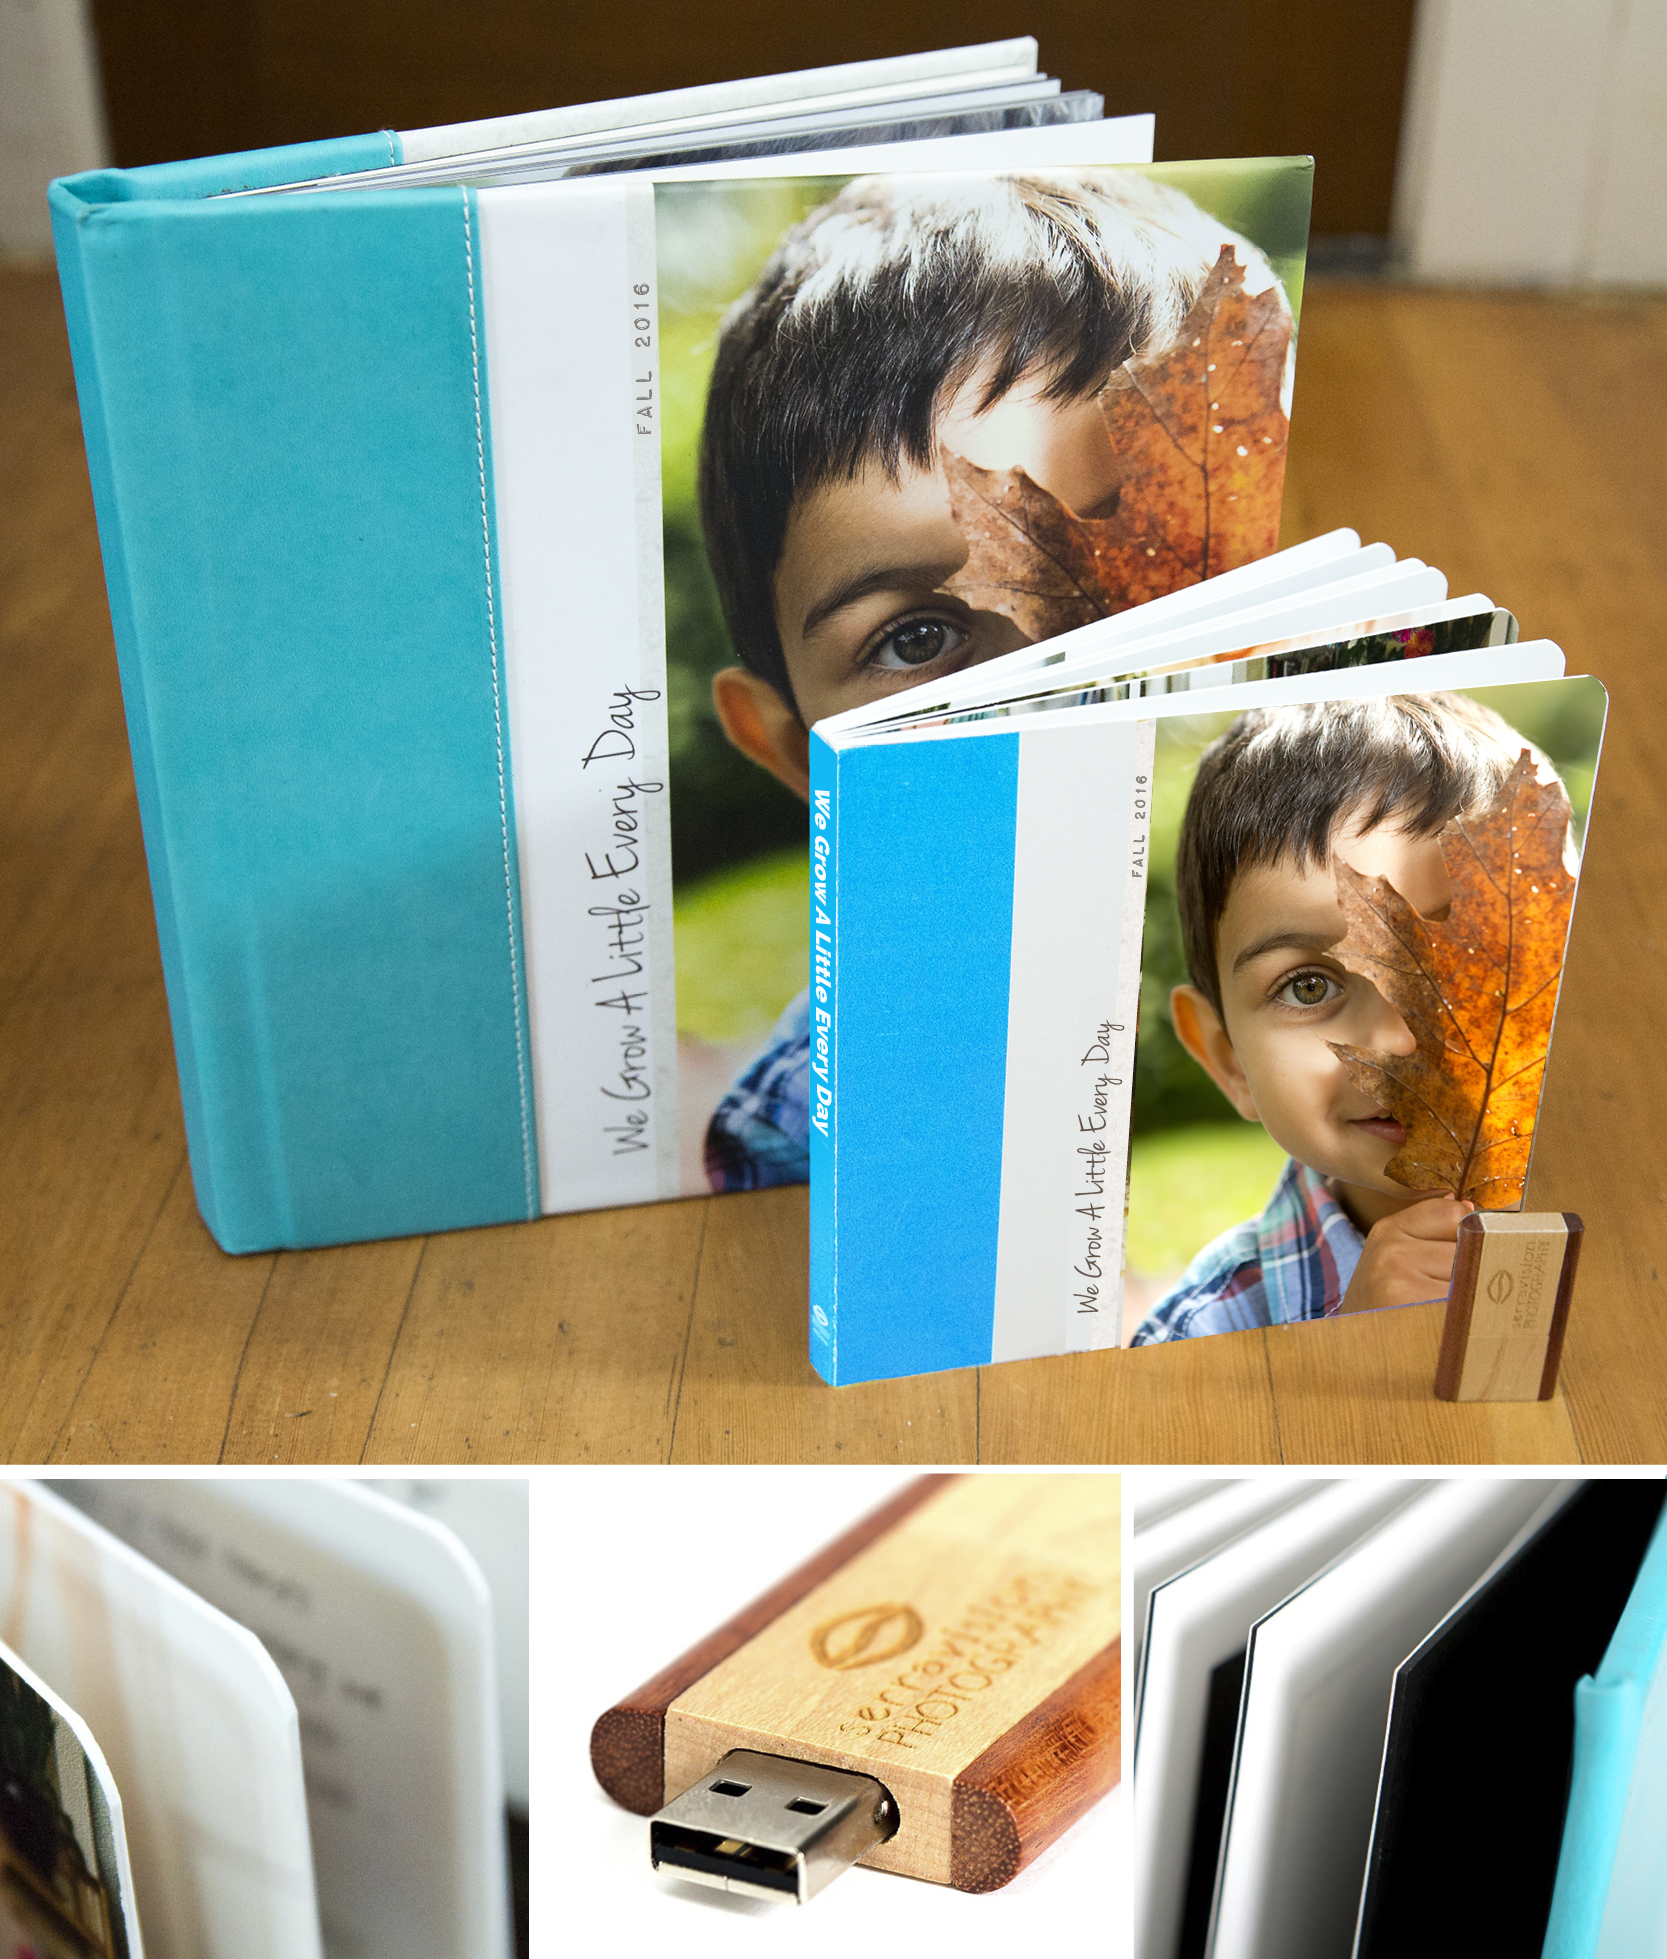 This photo shows in detail the three products clients receive with their storybook lifestyle photo session; a hard cover leather bound album storybook, a copy of their storybook in board book format, and a custom usb drive with all the digital files